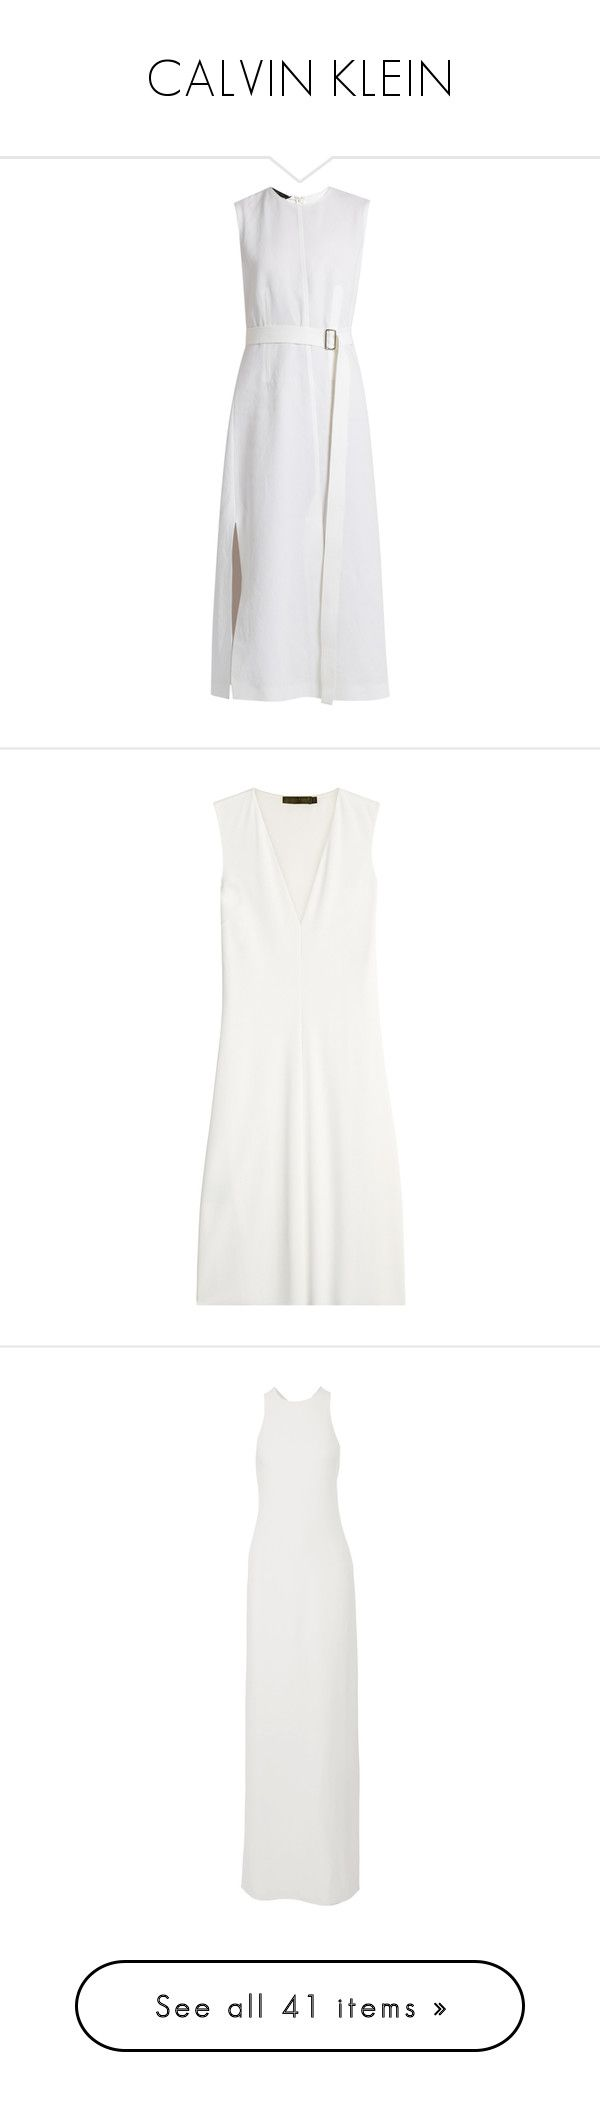 """""""CALVIN KLEIN"""" by mari-sv ❤ liked on Polyvore featuring dresses, white, white waist belt, white panel dress, white cotton dress, white day dress, cotton dresses, v neckline dress, calvin klein collection dresses and white dress"""